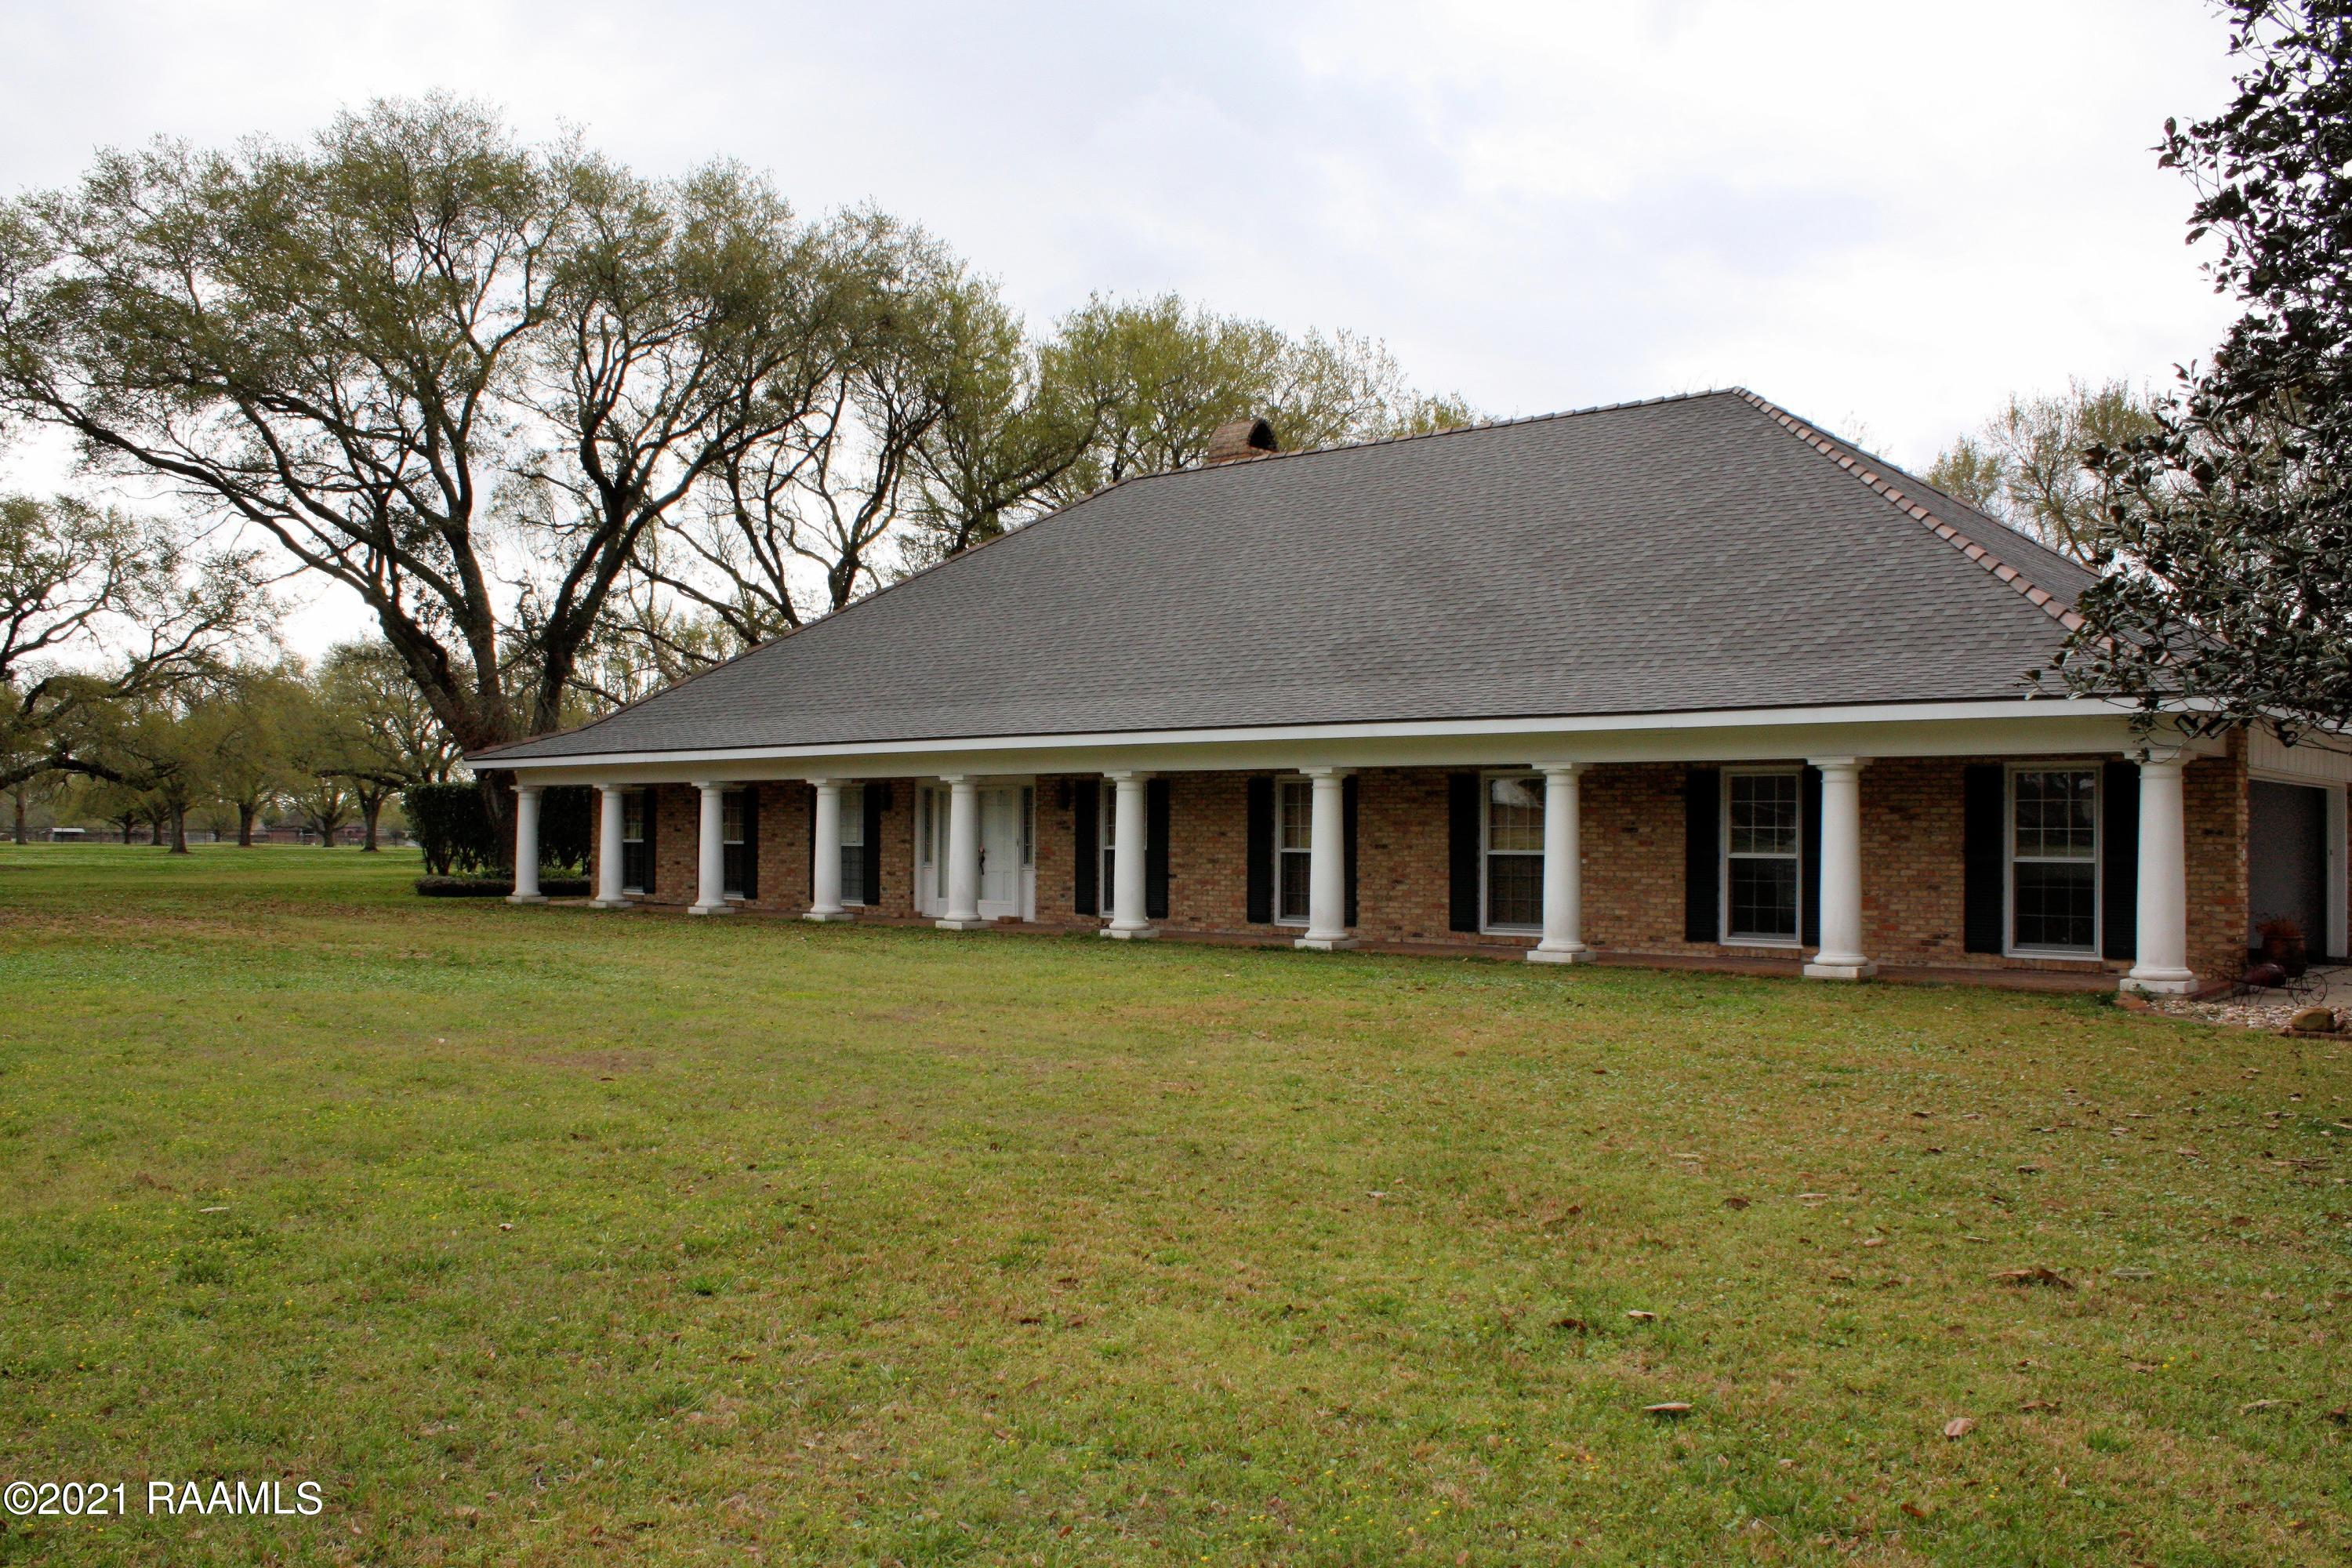 707 Chemin Metairie Road, Youngsville, LA 70592 Photo #1